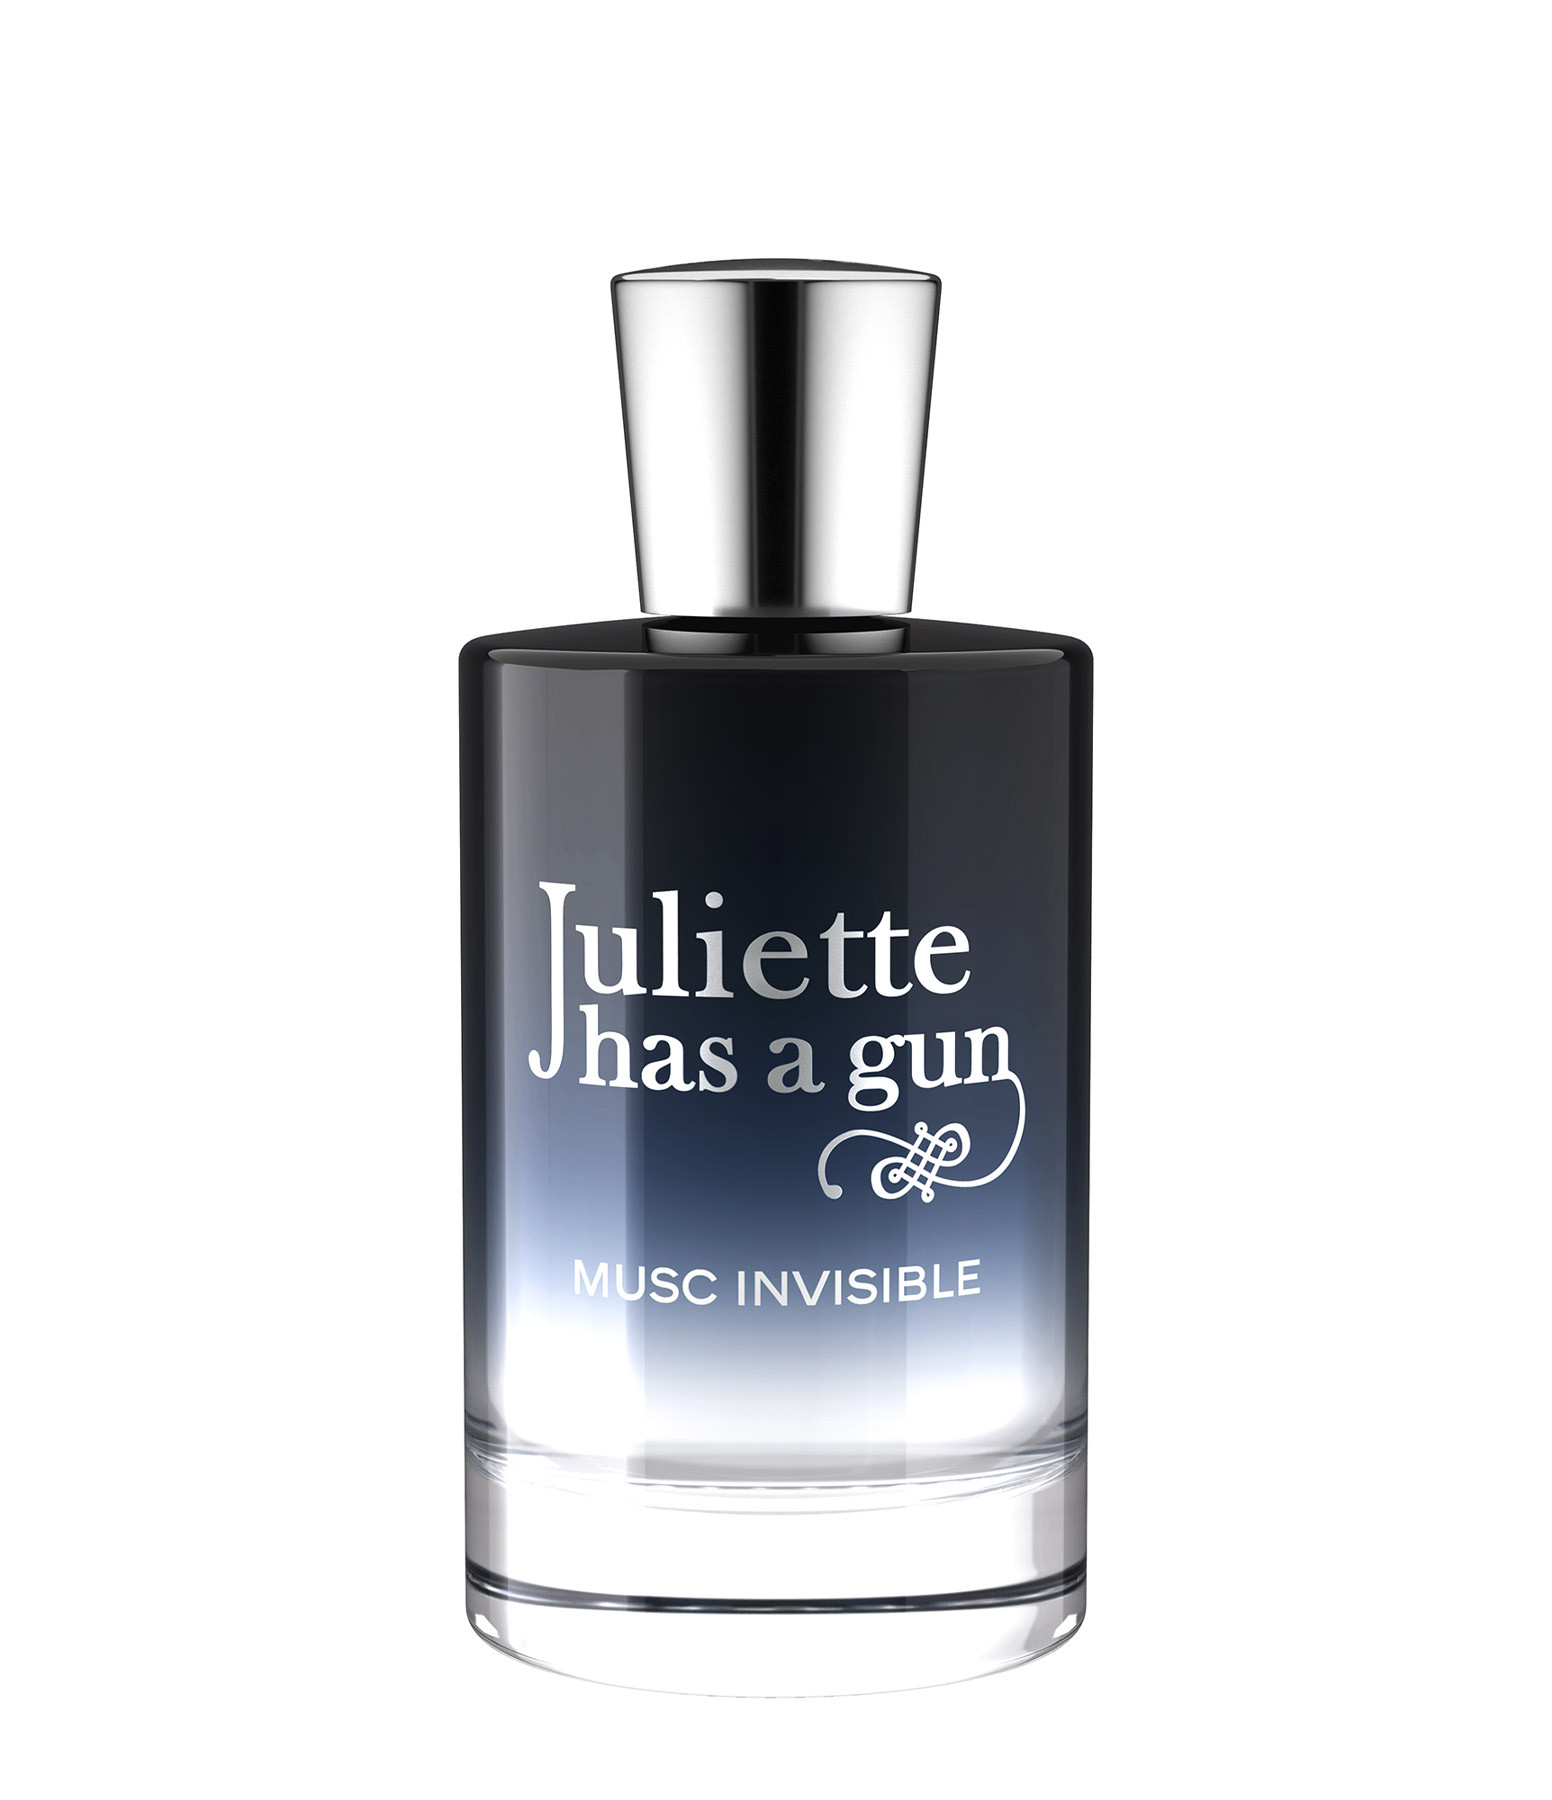 JULIETTE HAS A GUN - Eau de parfum Musc Invisible 100 ml